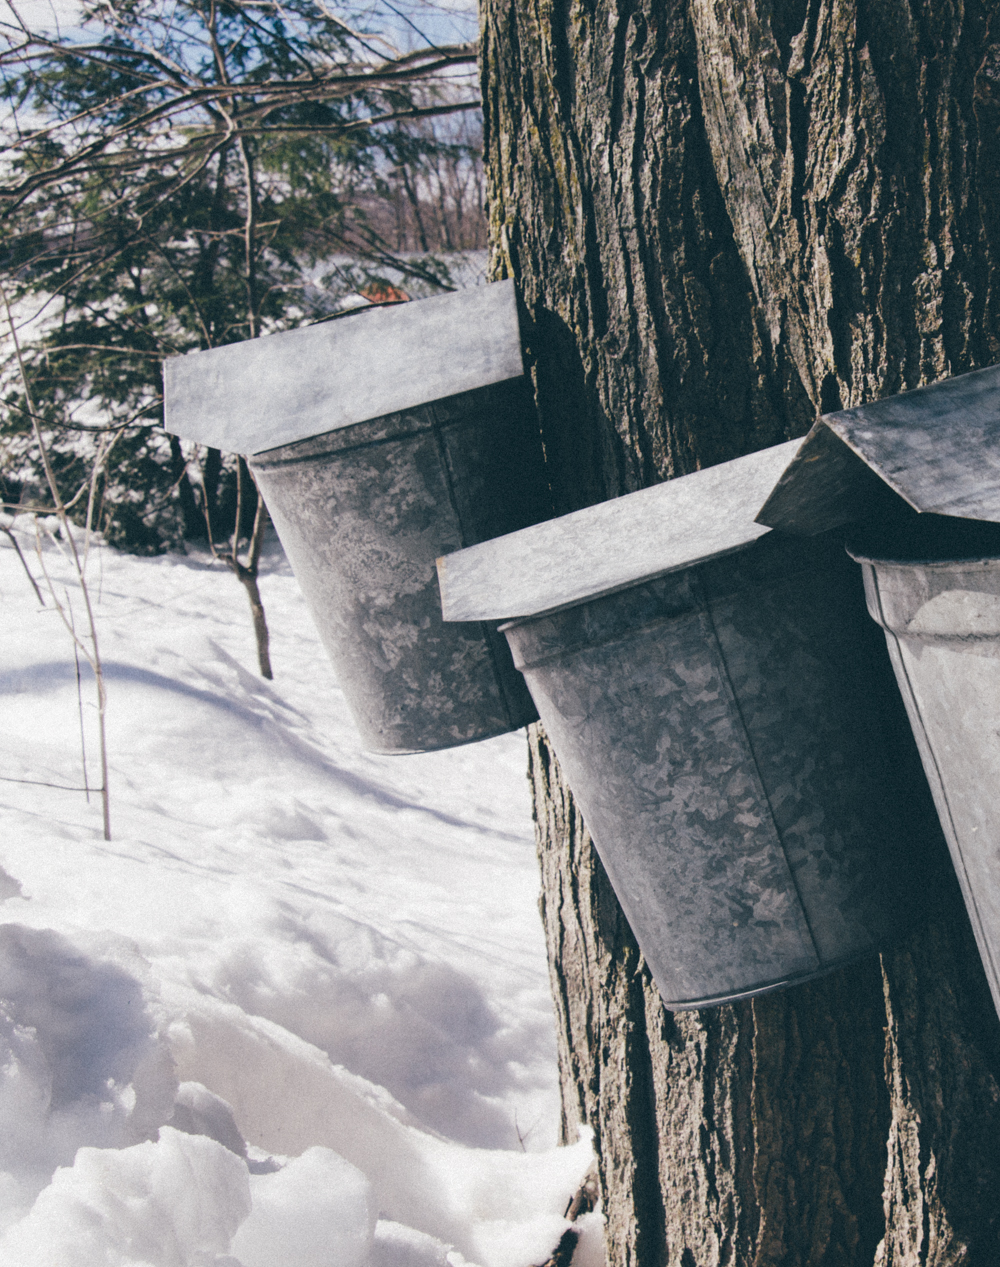 f8938316030 Making maple syrup in New England has been a tradition for hundreds of  years. People look forward to sugaring season ...